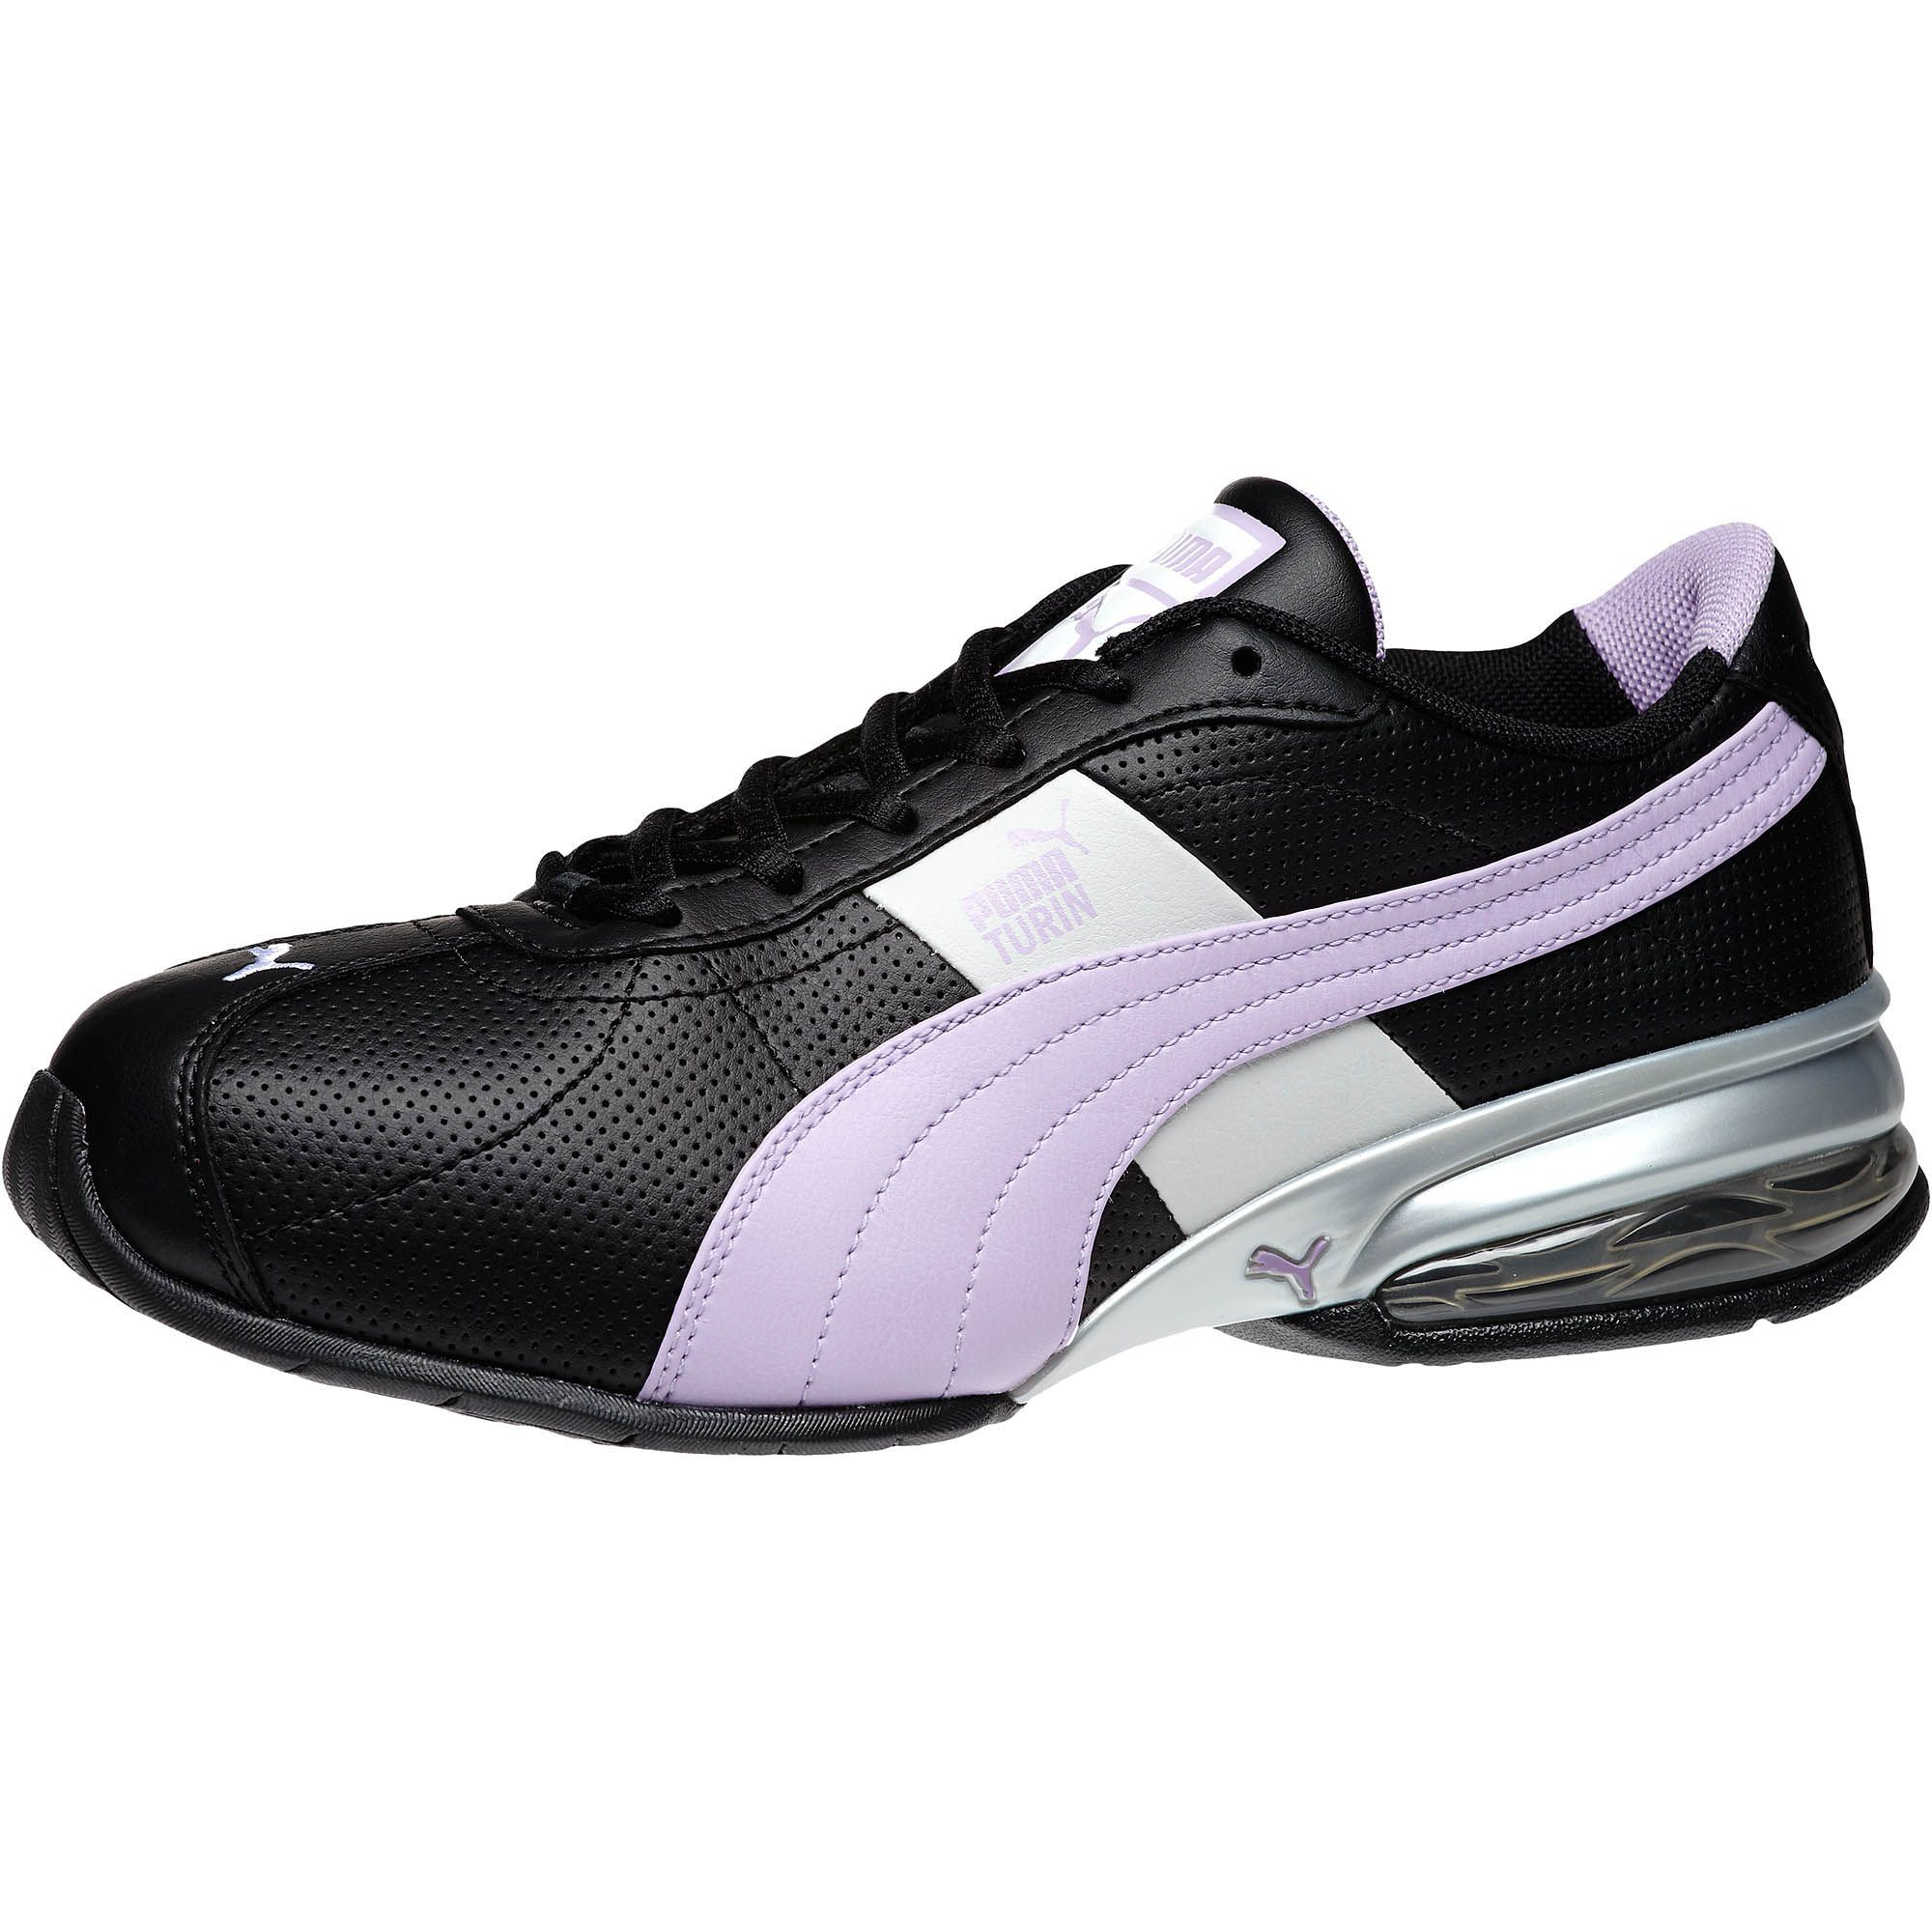 PUMA Cell Turin Perf Women's Running Shoes | - from the official Puma®  Online Store